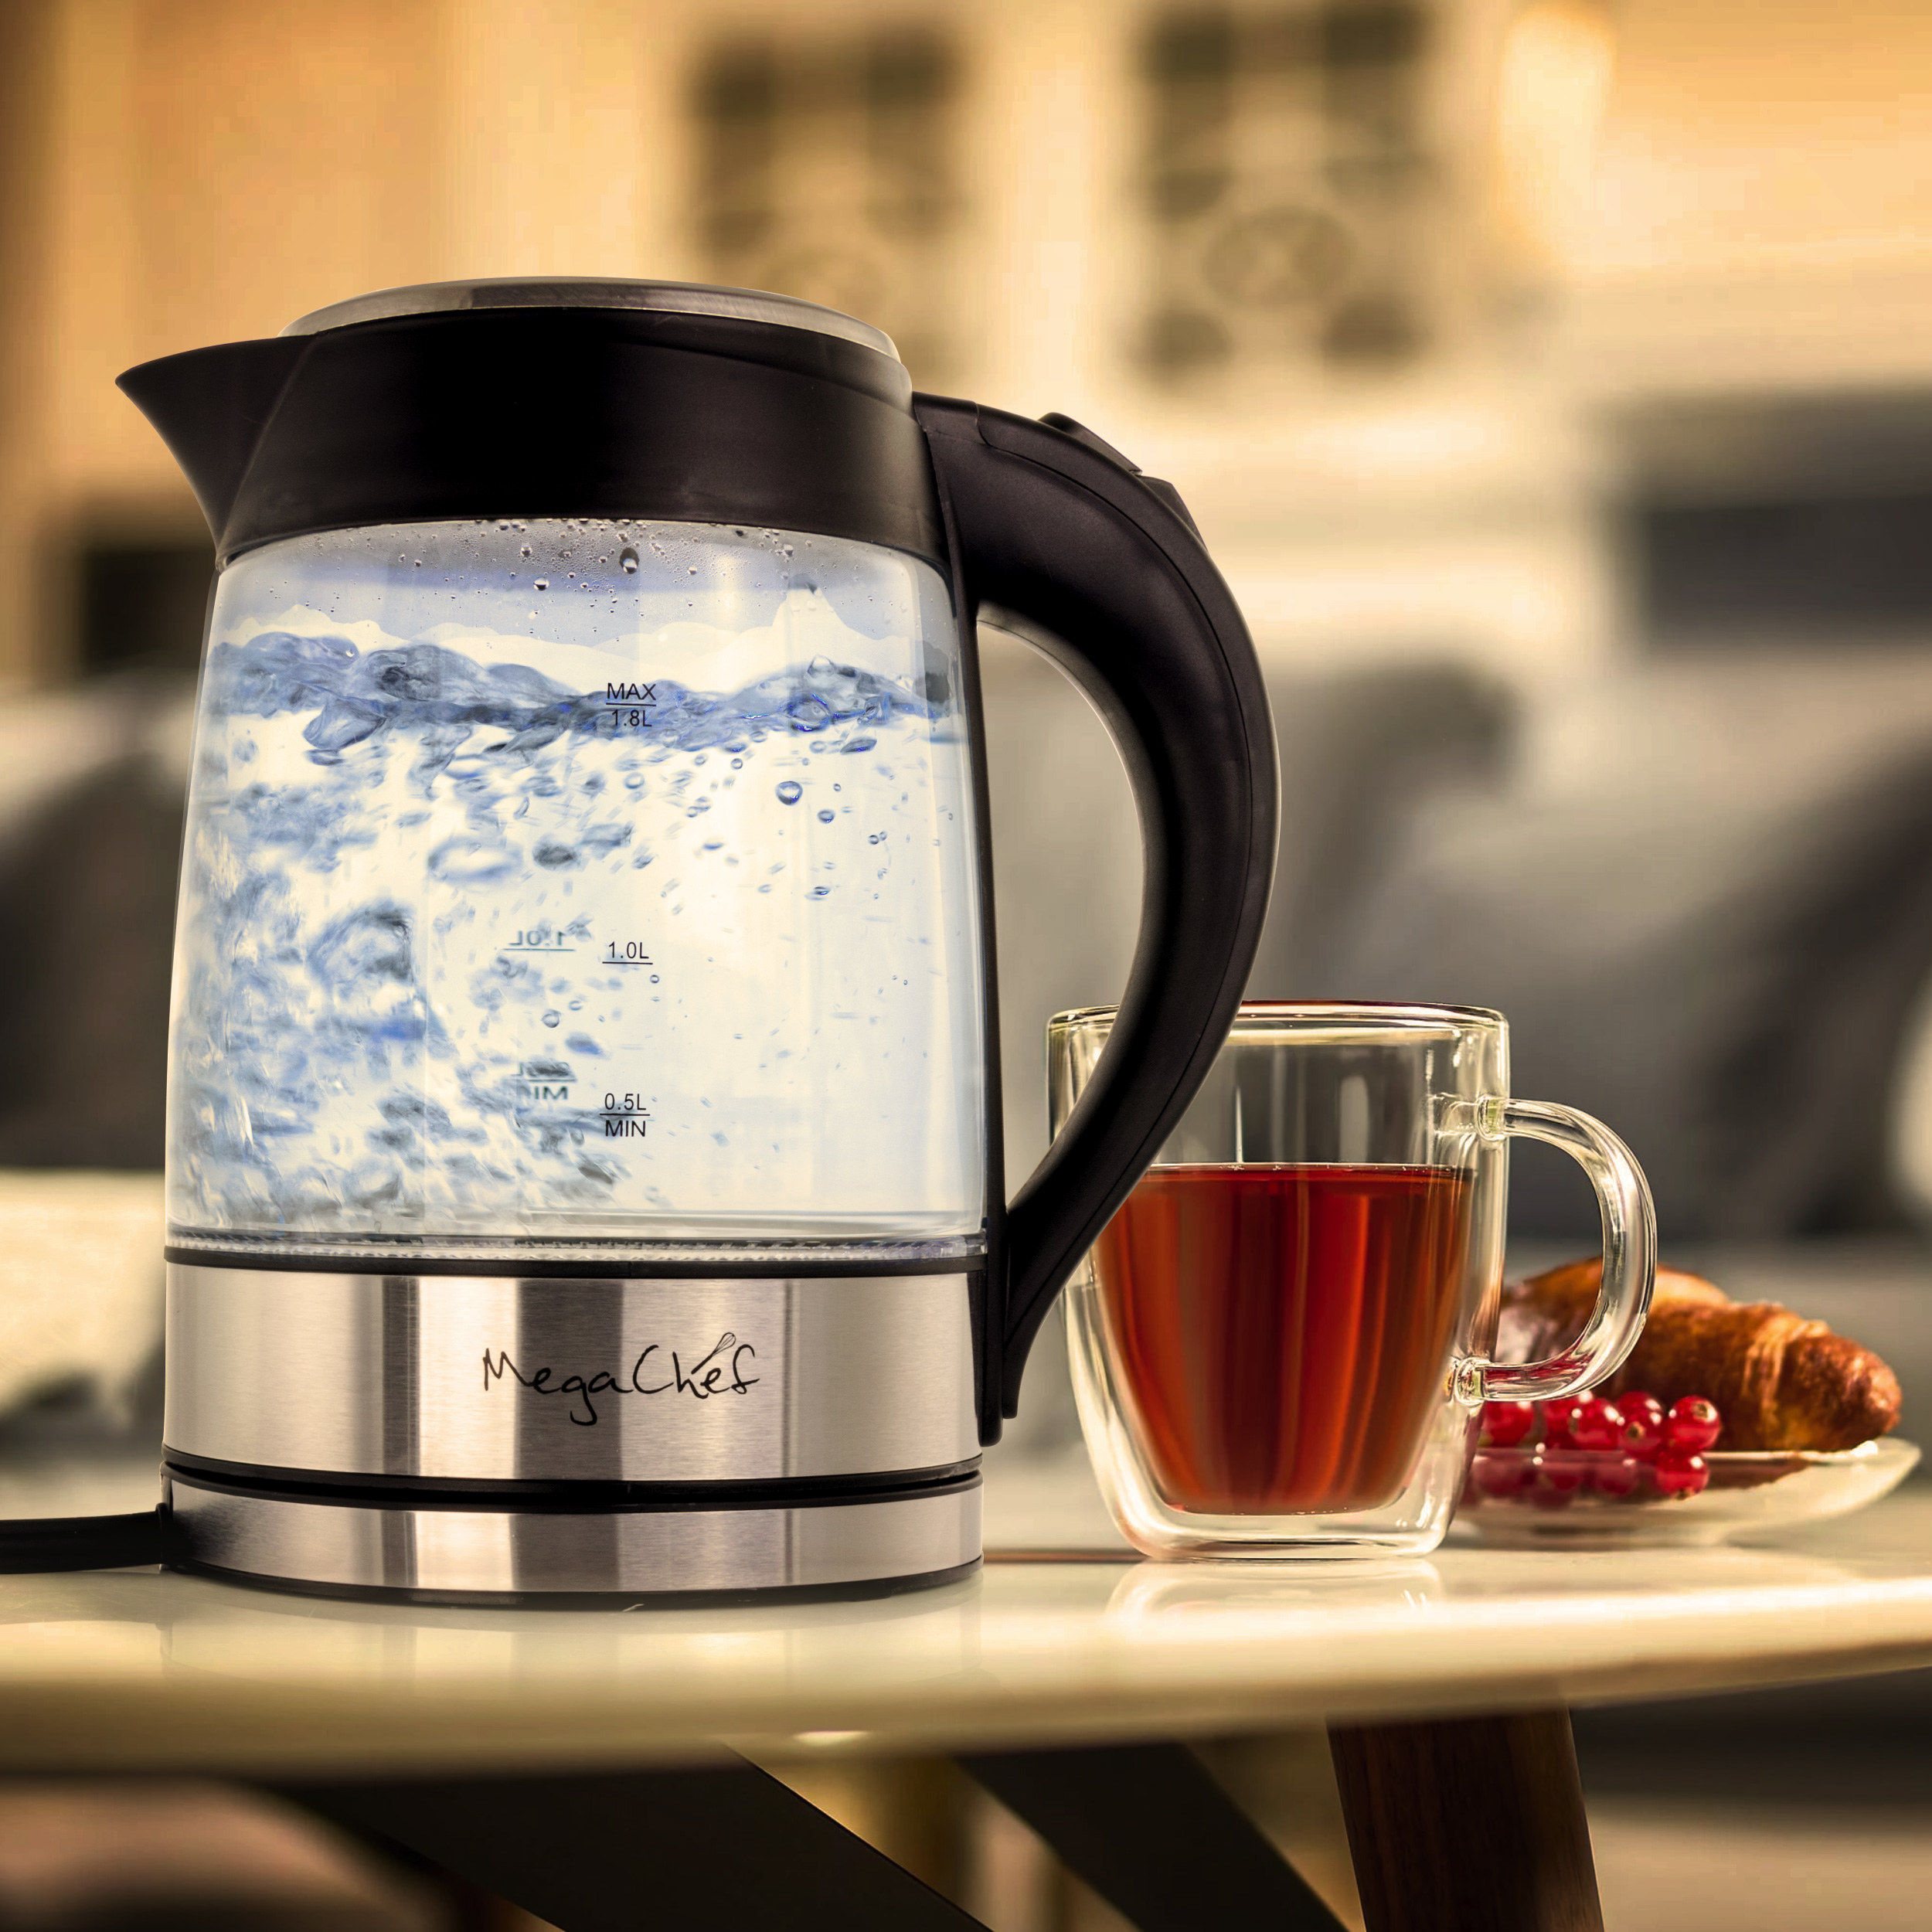 A transparent glass electric kettle with black accents